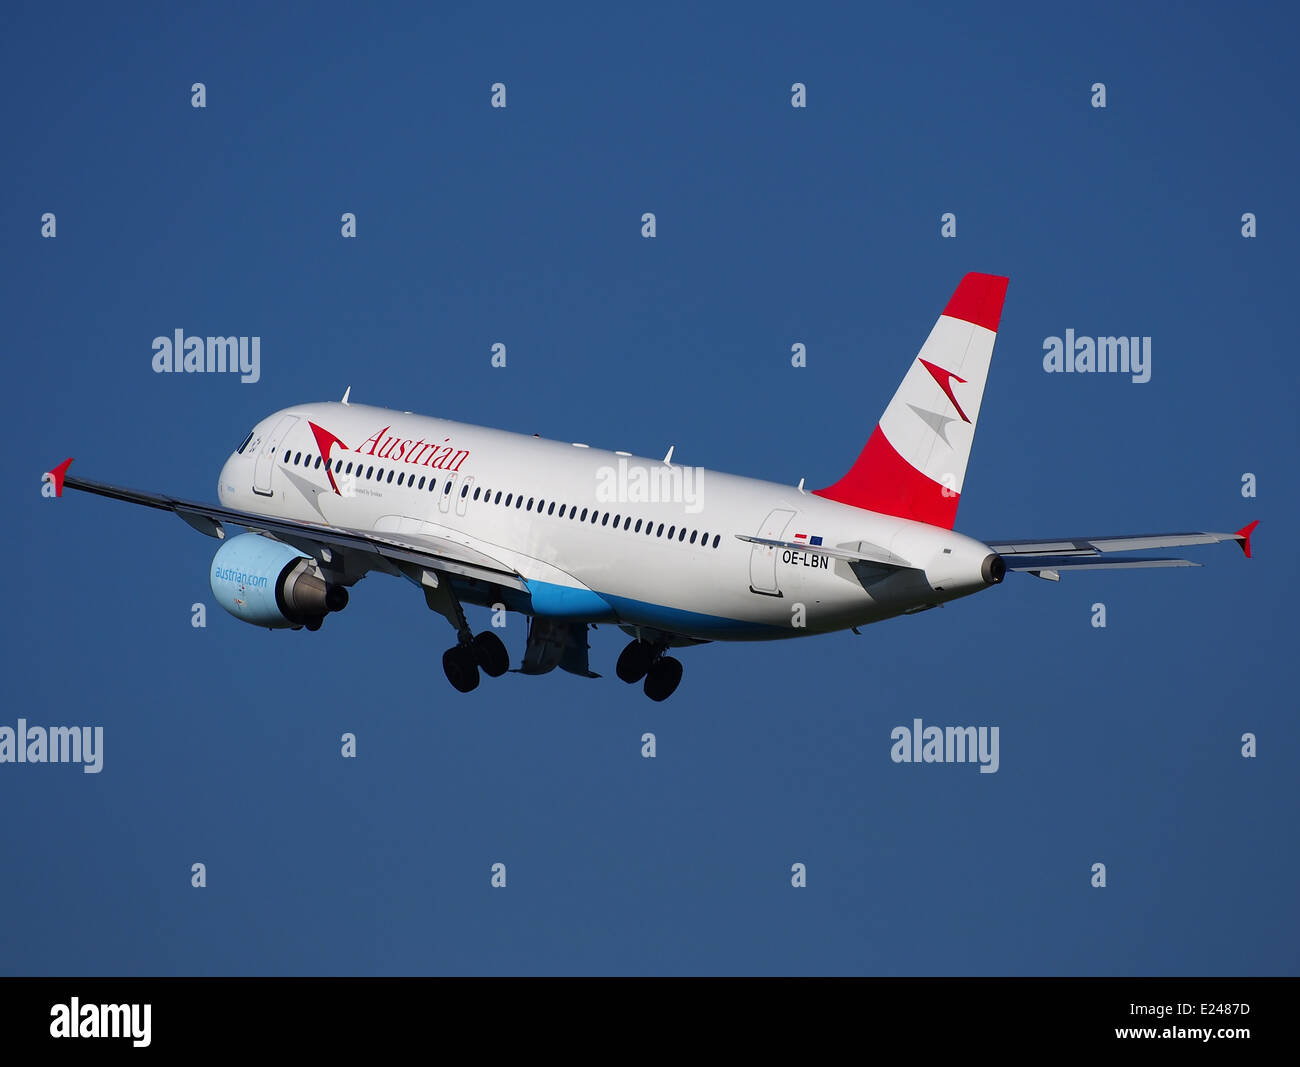 OE-LBN Austrian Airlines Airbus A320-214 - cn 768 takeoff from Schiphol (AMS - EHAM), The Netherlands, 16may2014, - Stock Image